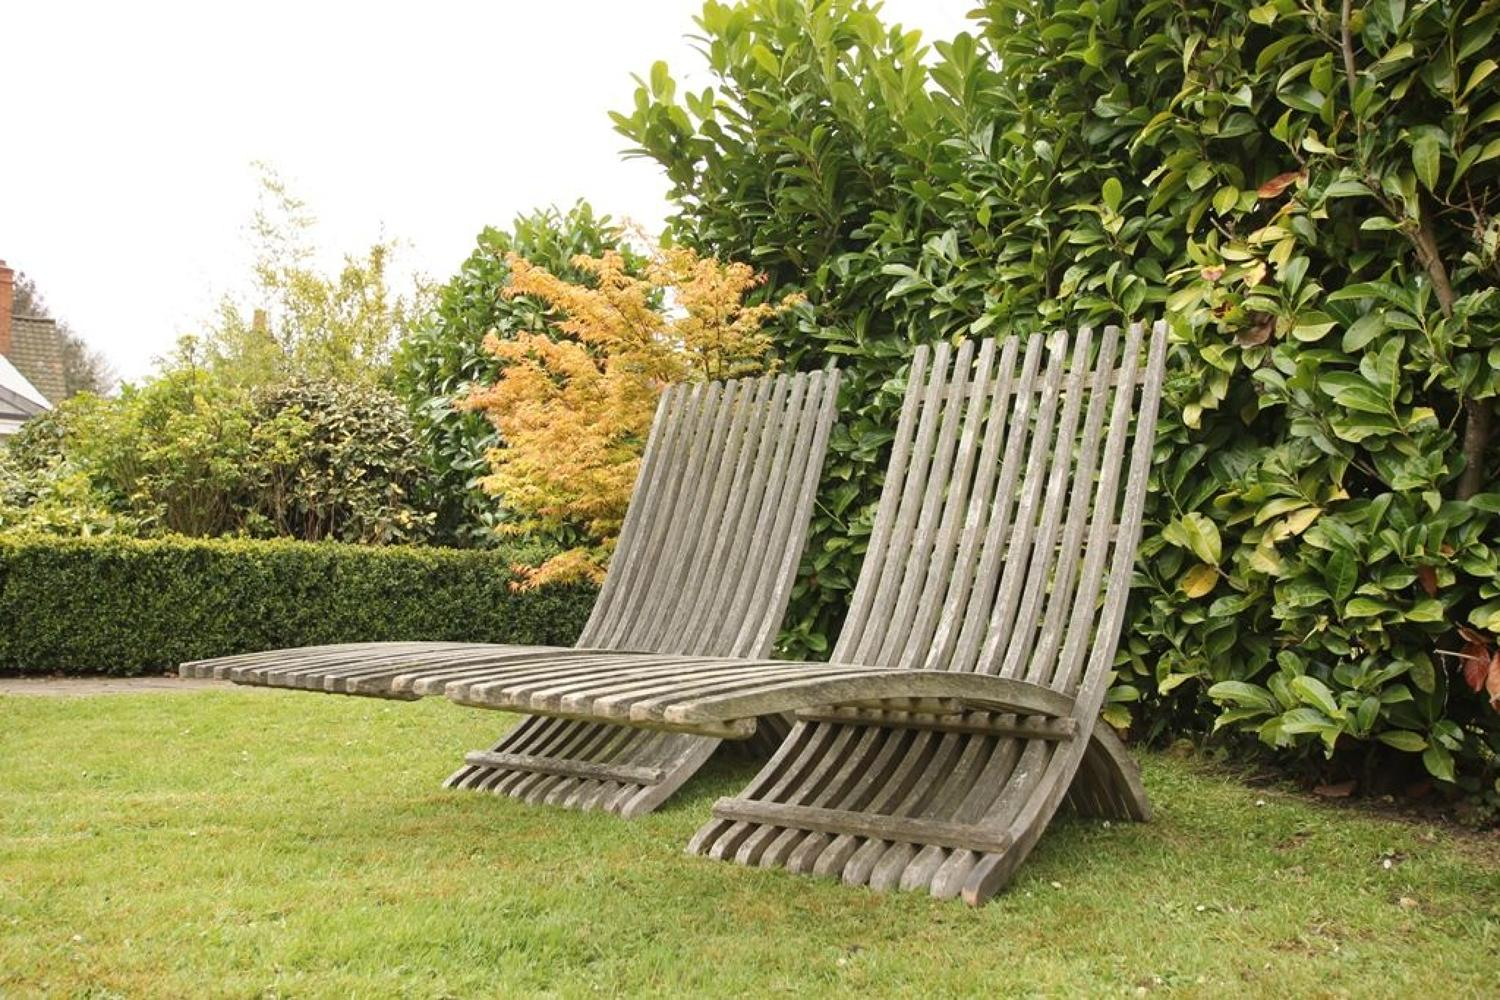 Stylish Pair of 1920's Teak Garden Lounger Chairs